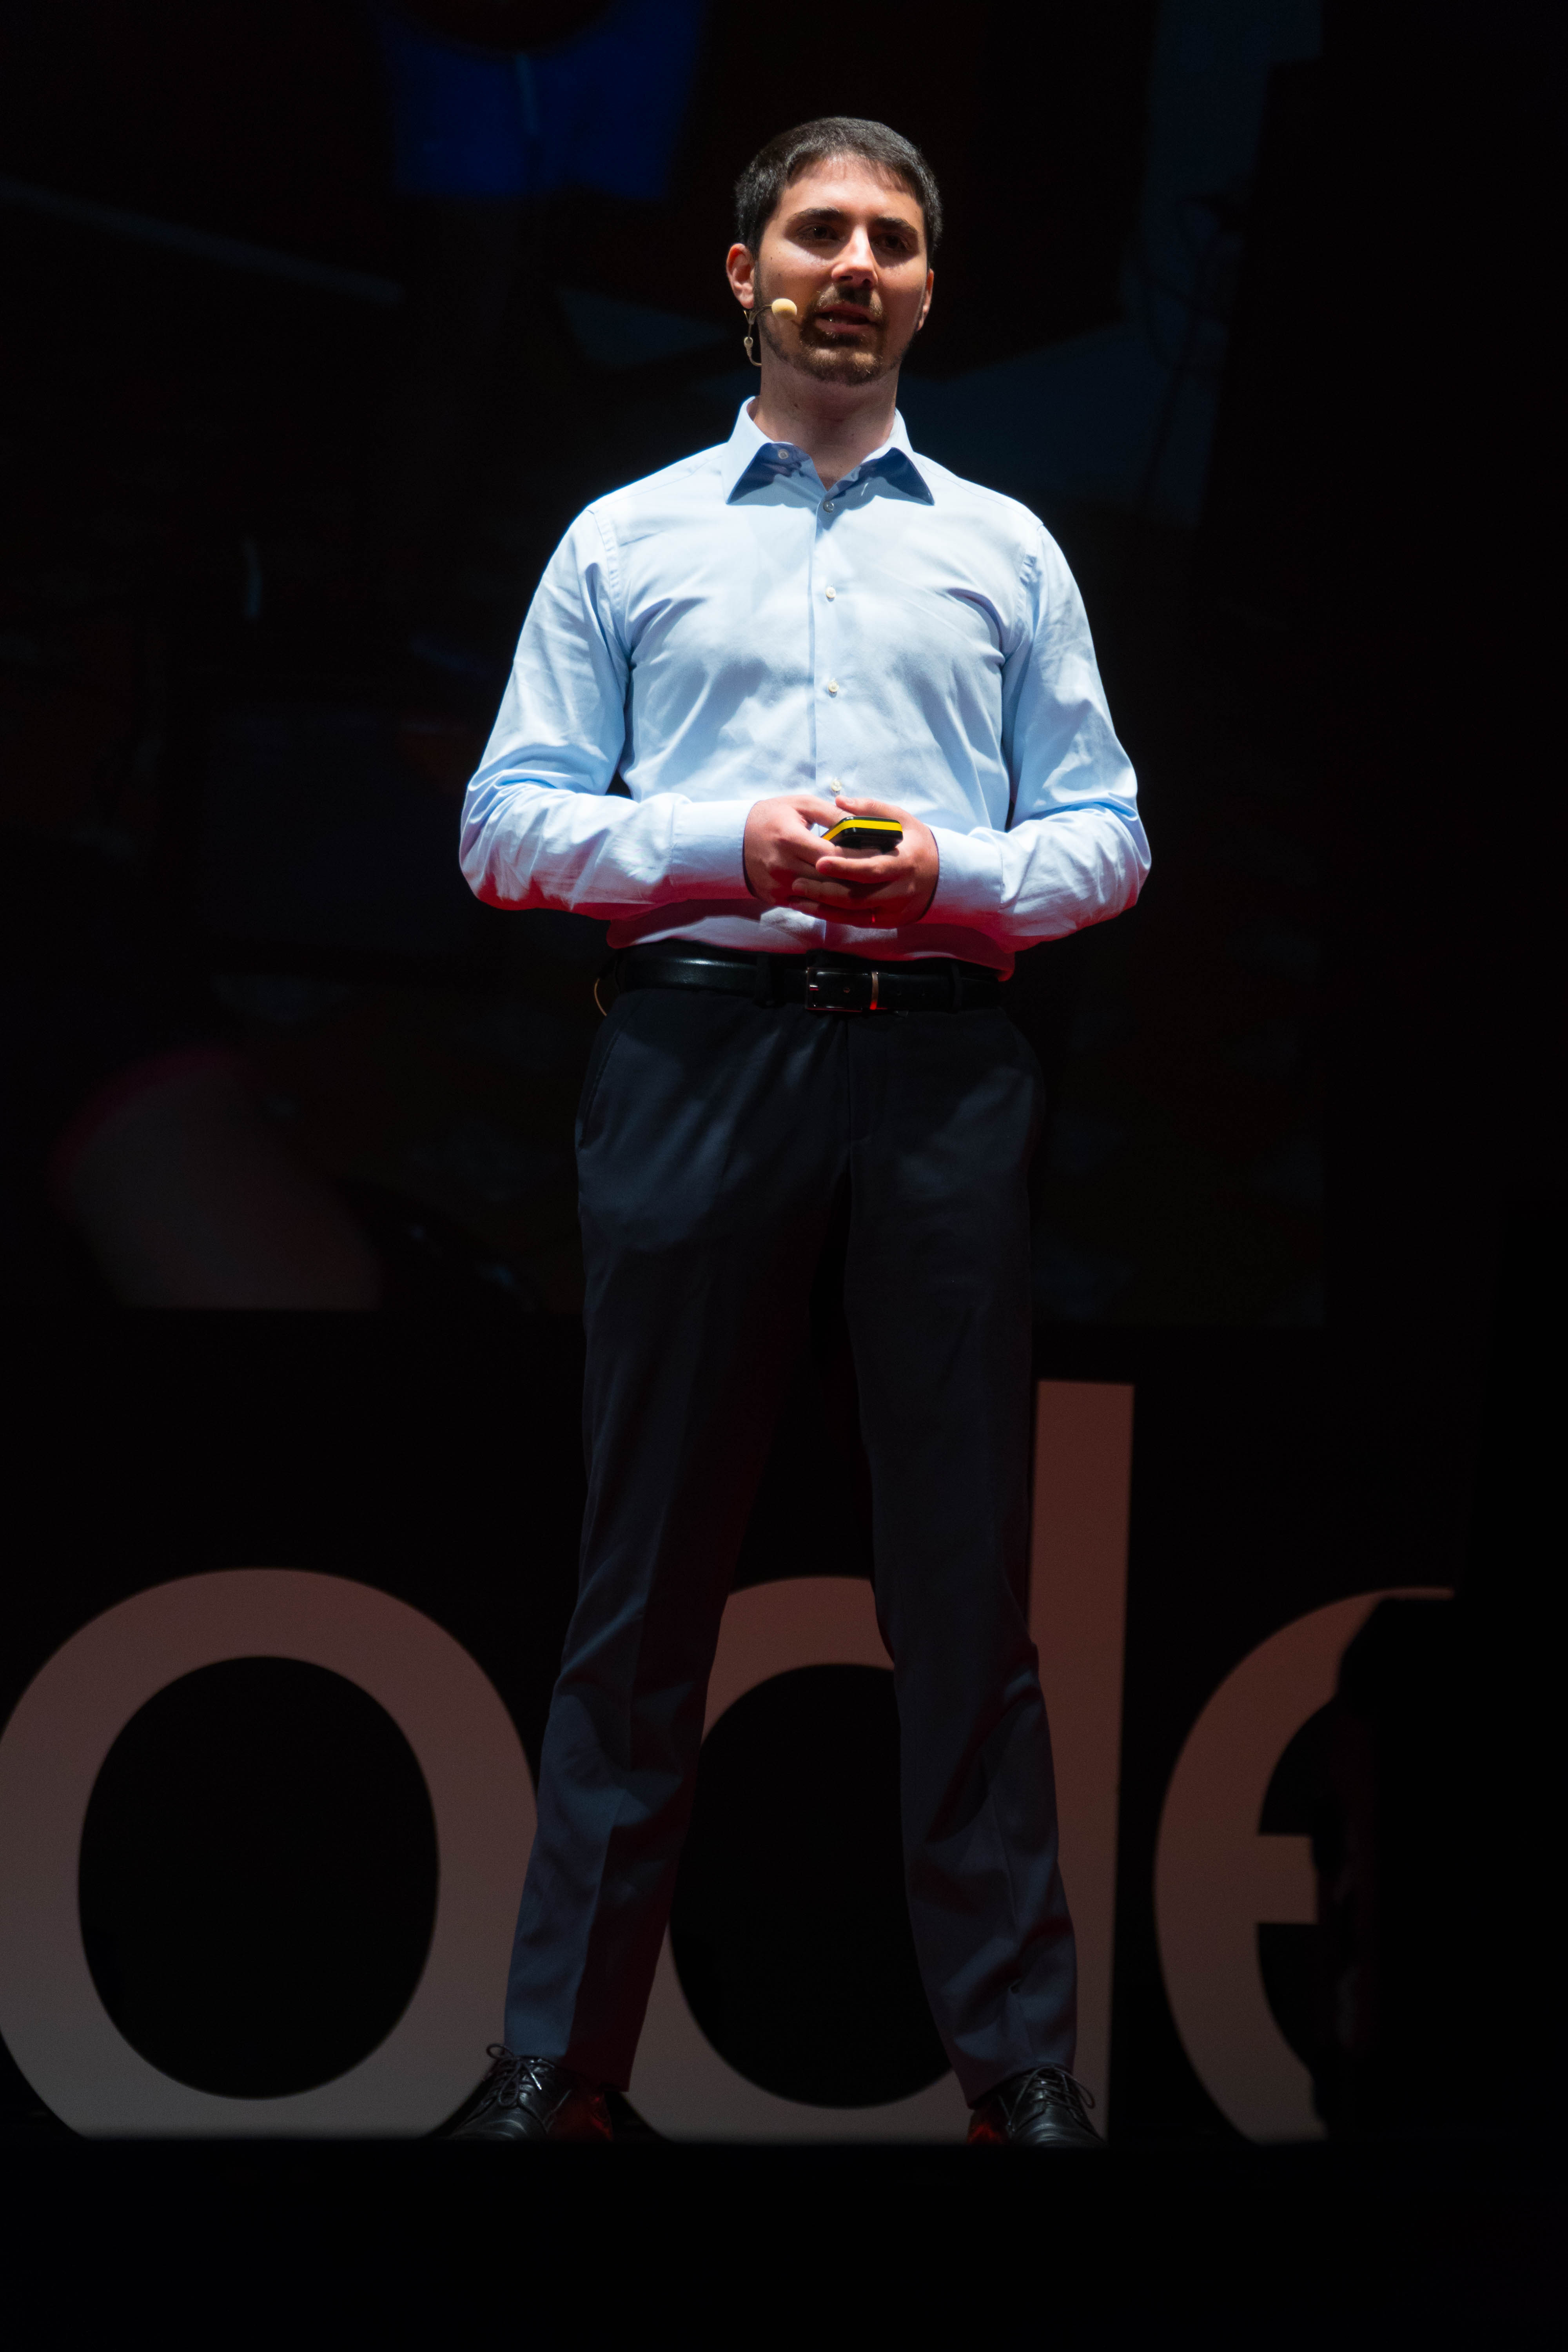 Giuseppe Alonci on the stage of TEDx Modena 2018